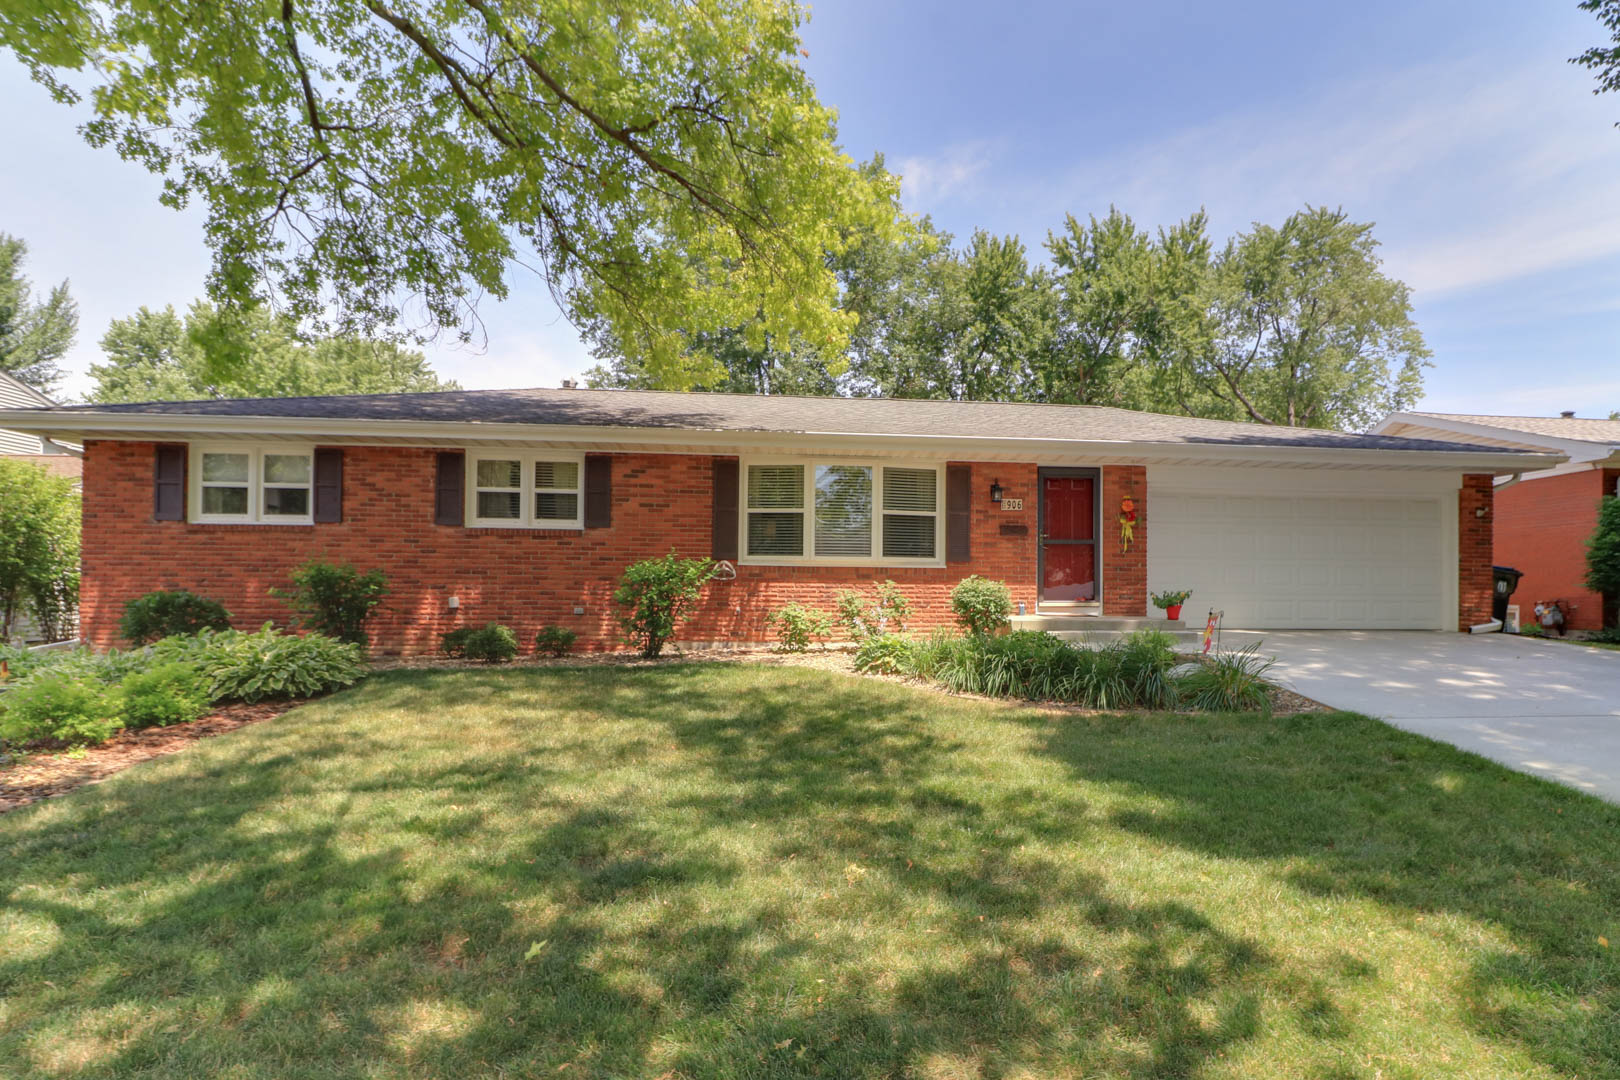 906 Hanlin Court,          Normal IL 61761- SOLD!